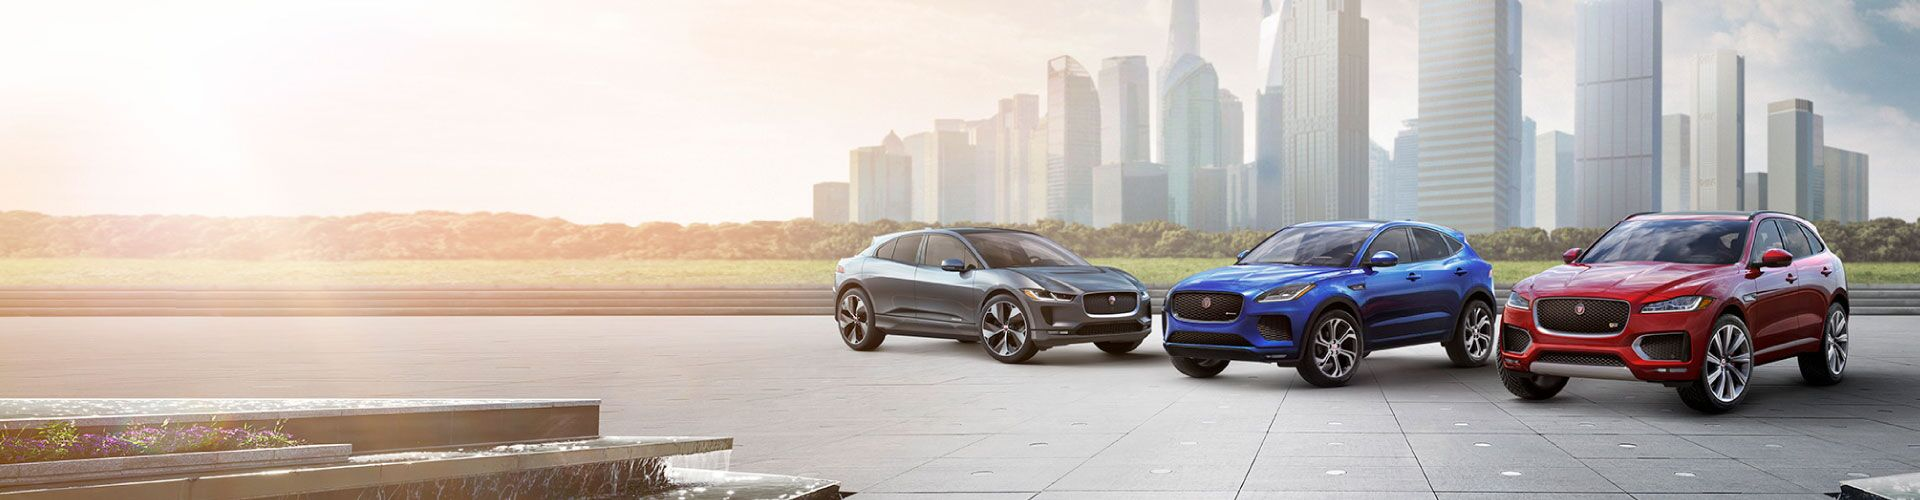 2019 Jag APR offer